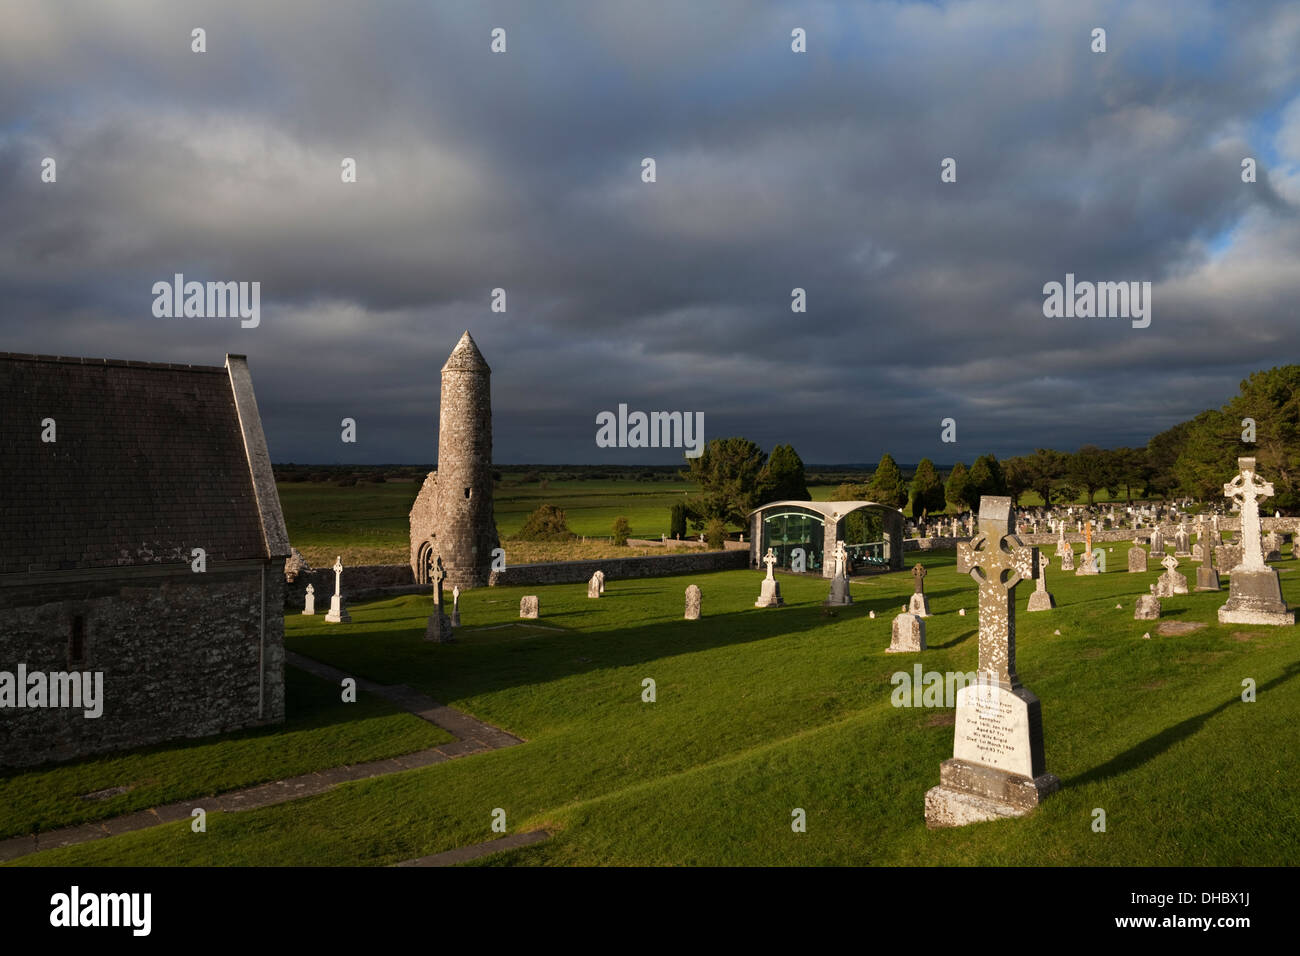 The West Church, Round Tower and Modern Chapel, Clonmacnoise Ecclesiastical Centre, County Offaly, Ireland - Stock Image